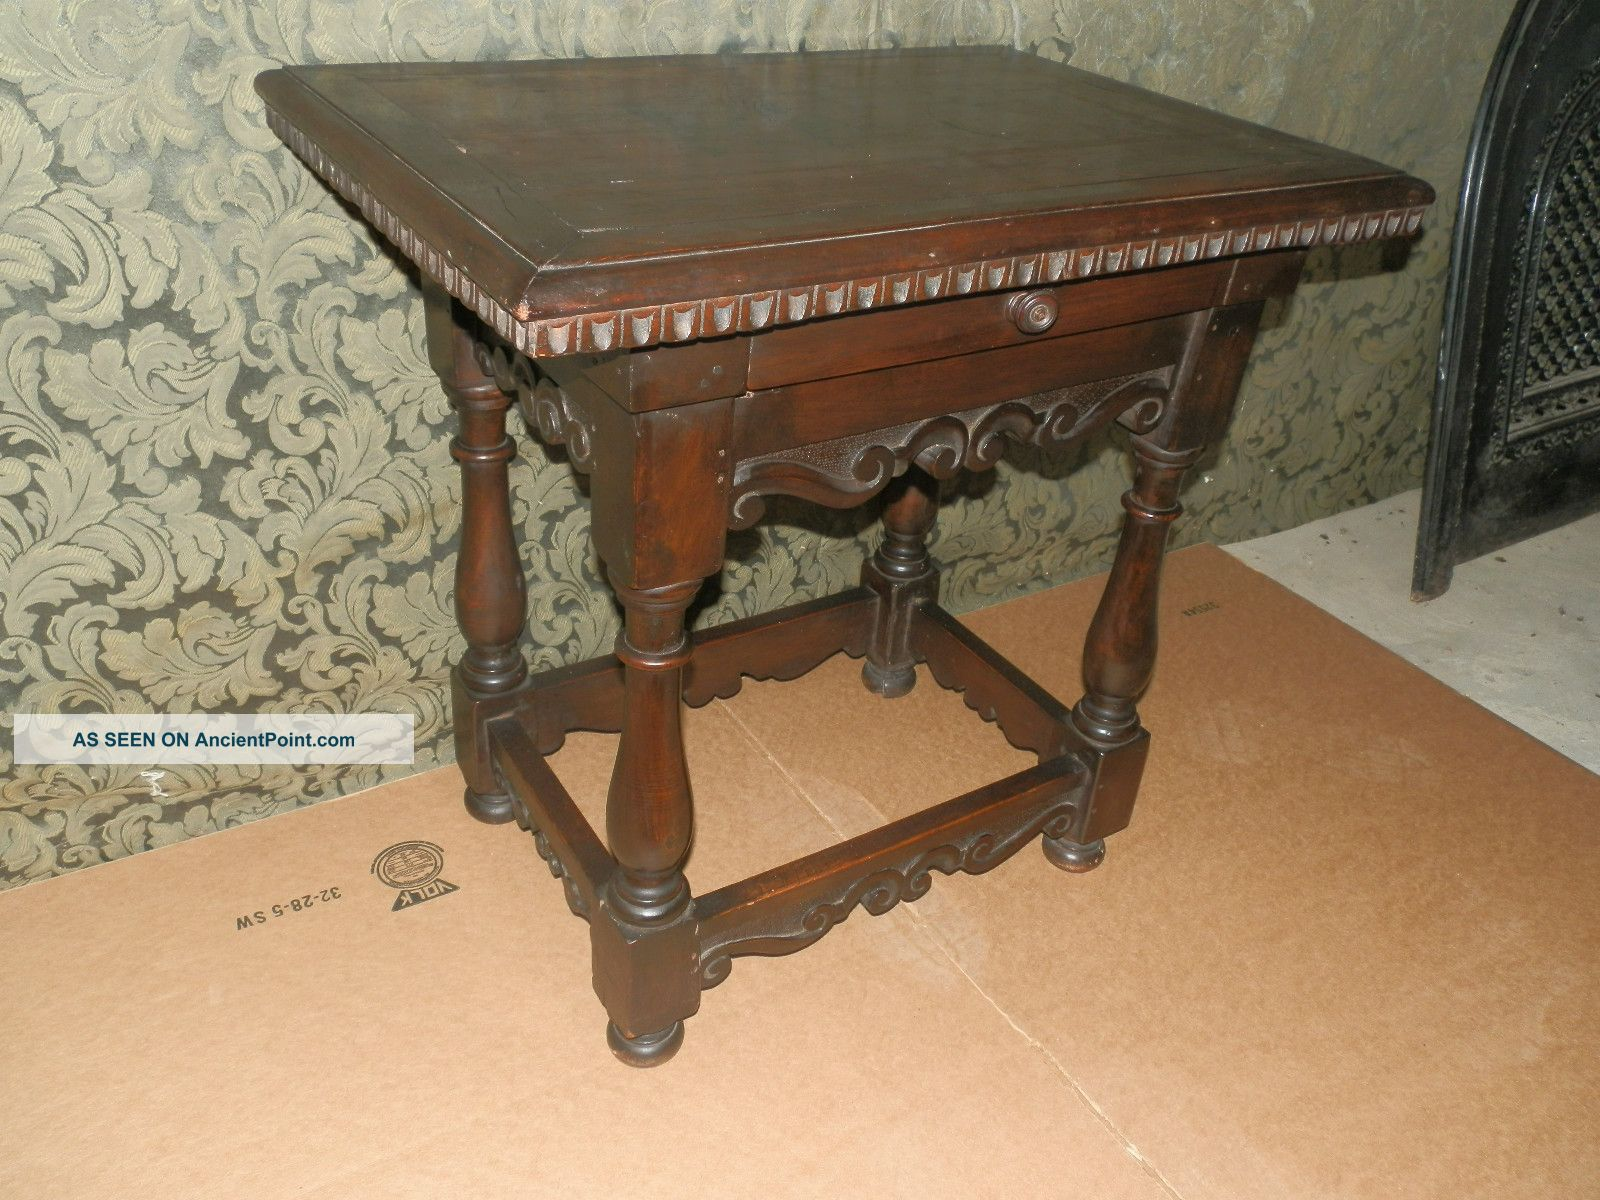 Wonderful Antique English Oak Pub Table With Carved Detail & Drawer 1900-1950 photo